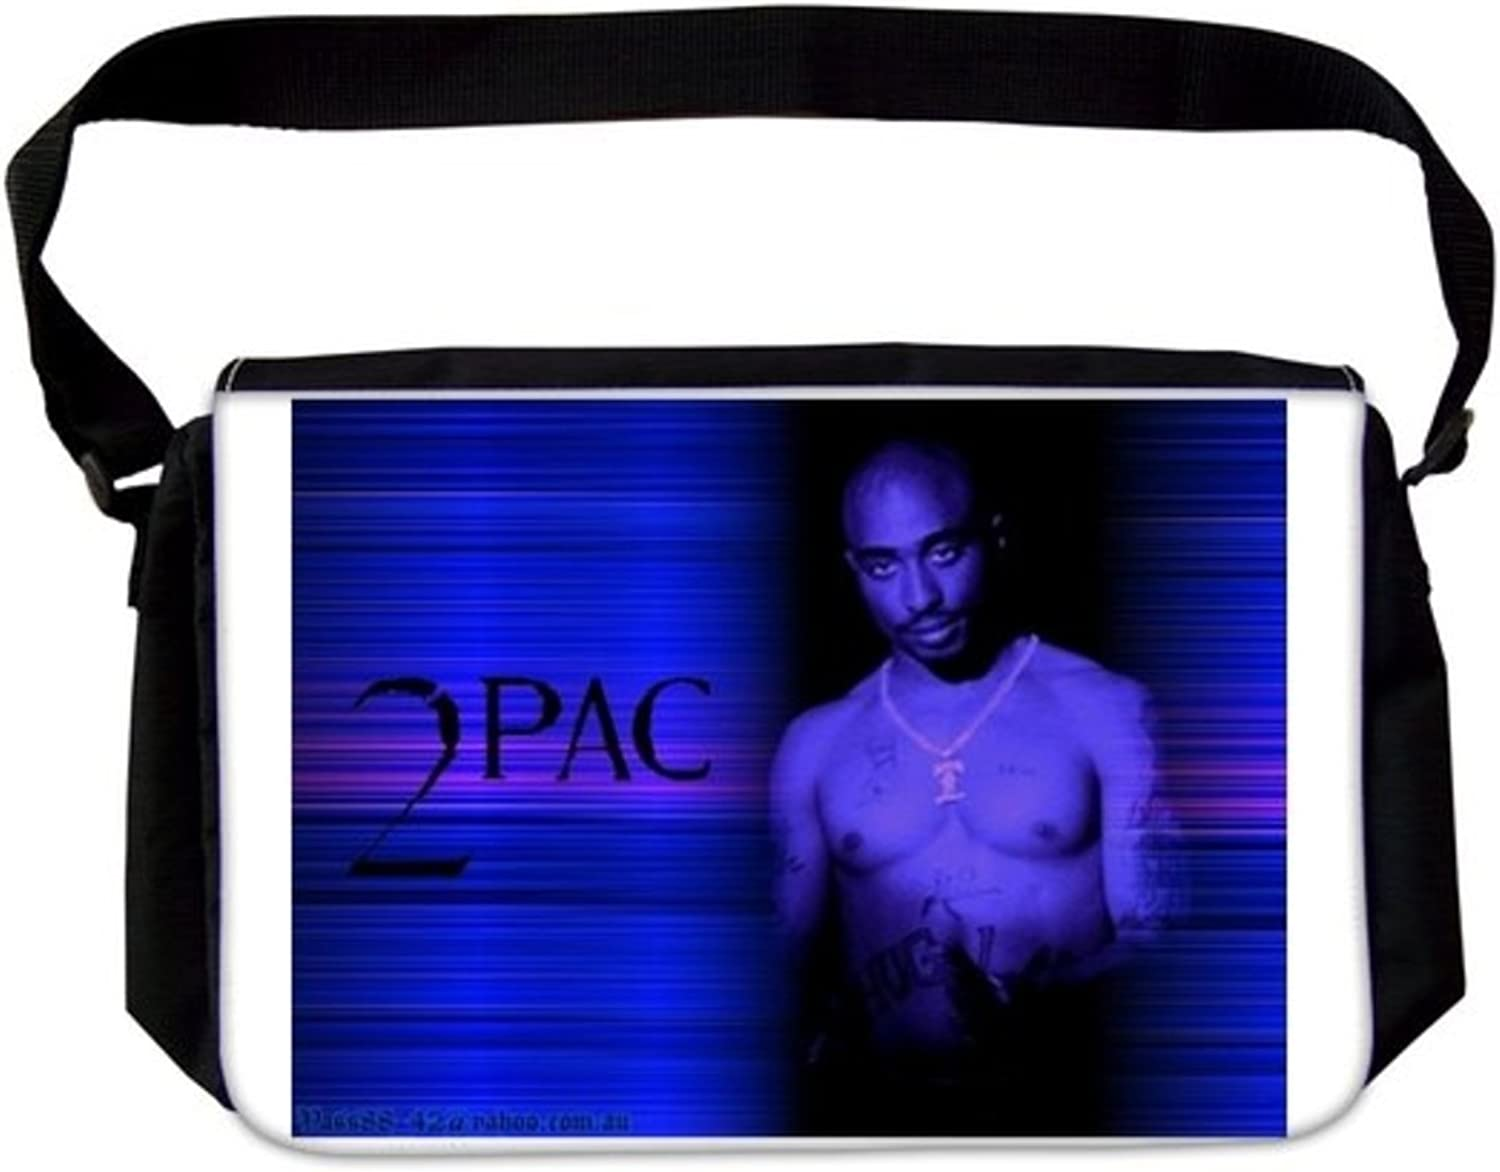 Stunning 2Pac Tupac Shakur Topless Thug Life Digital Stripped bluee Background Hip Hop Rap Laptop School Bag Business Bag Casual Daypack Multiple Pockets Unisex for Men & Women